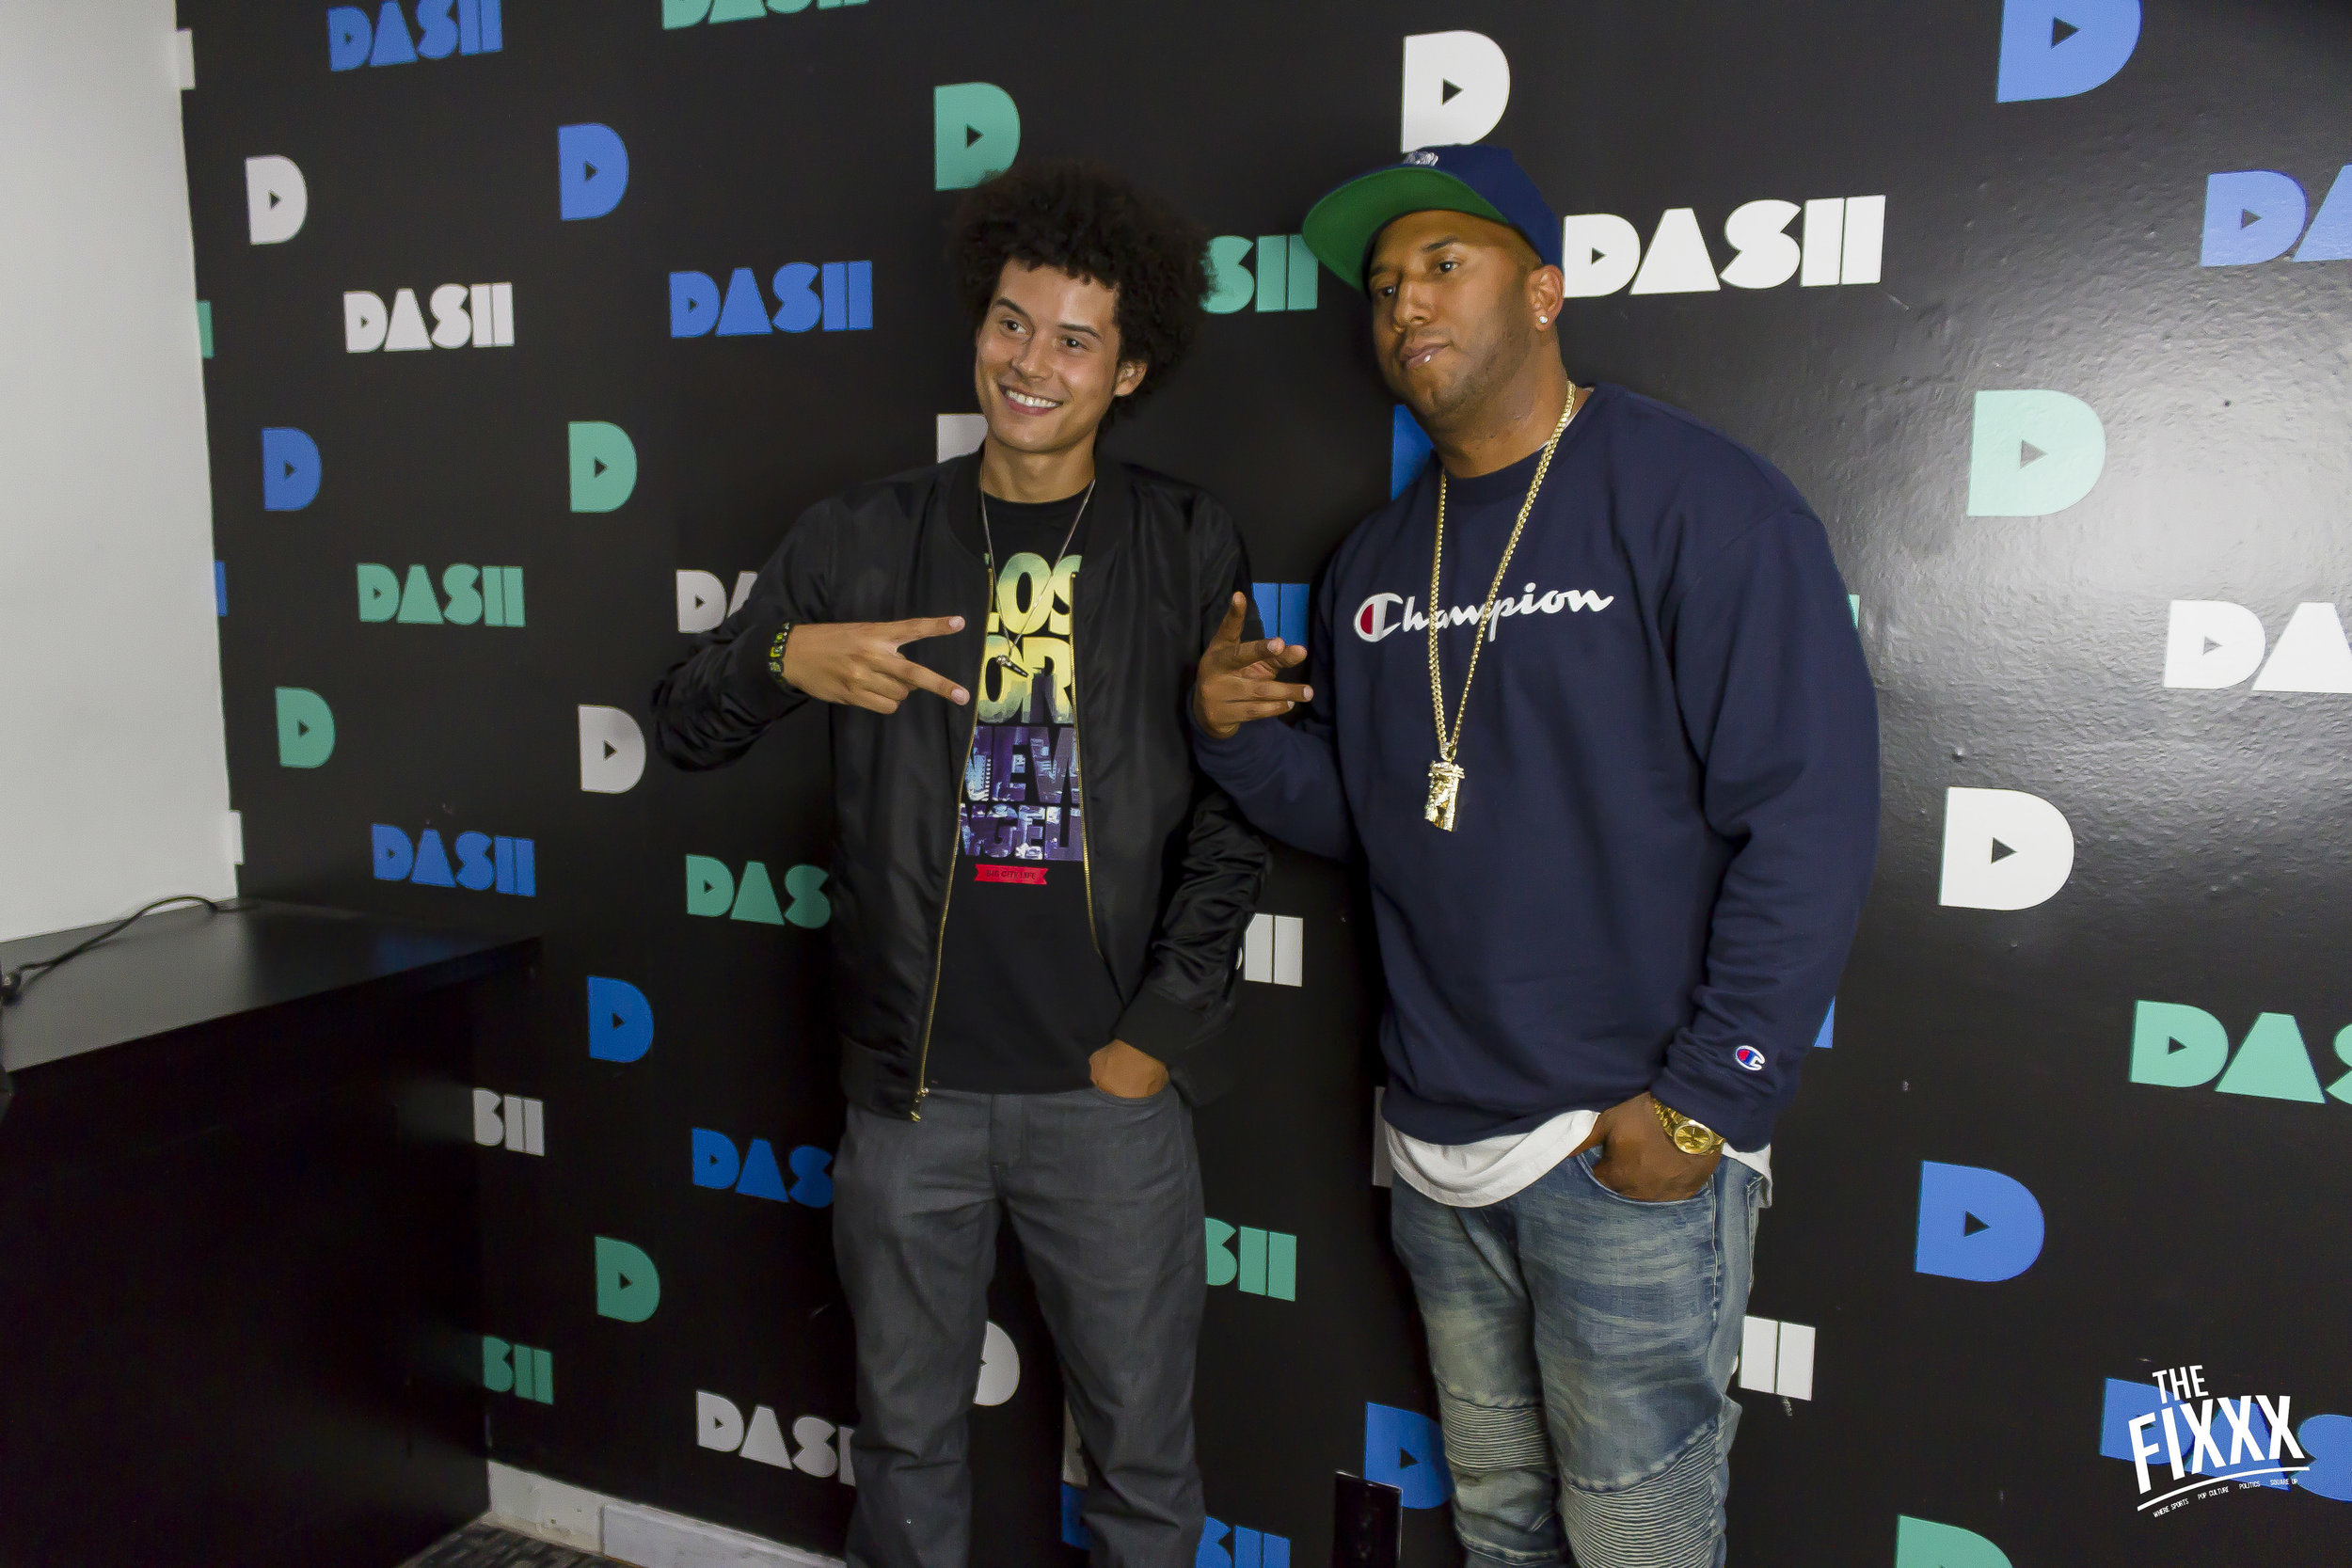 The Fixxx on Dash Radio - 08-31-18_15.jpg